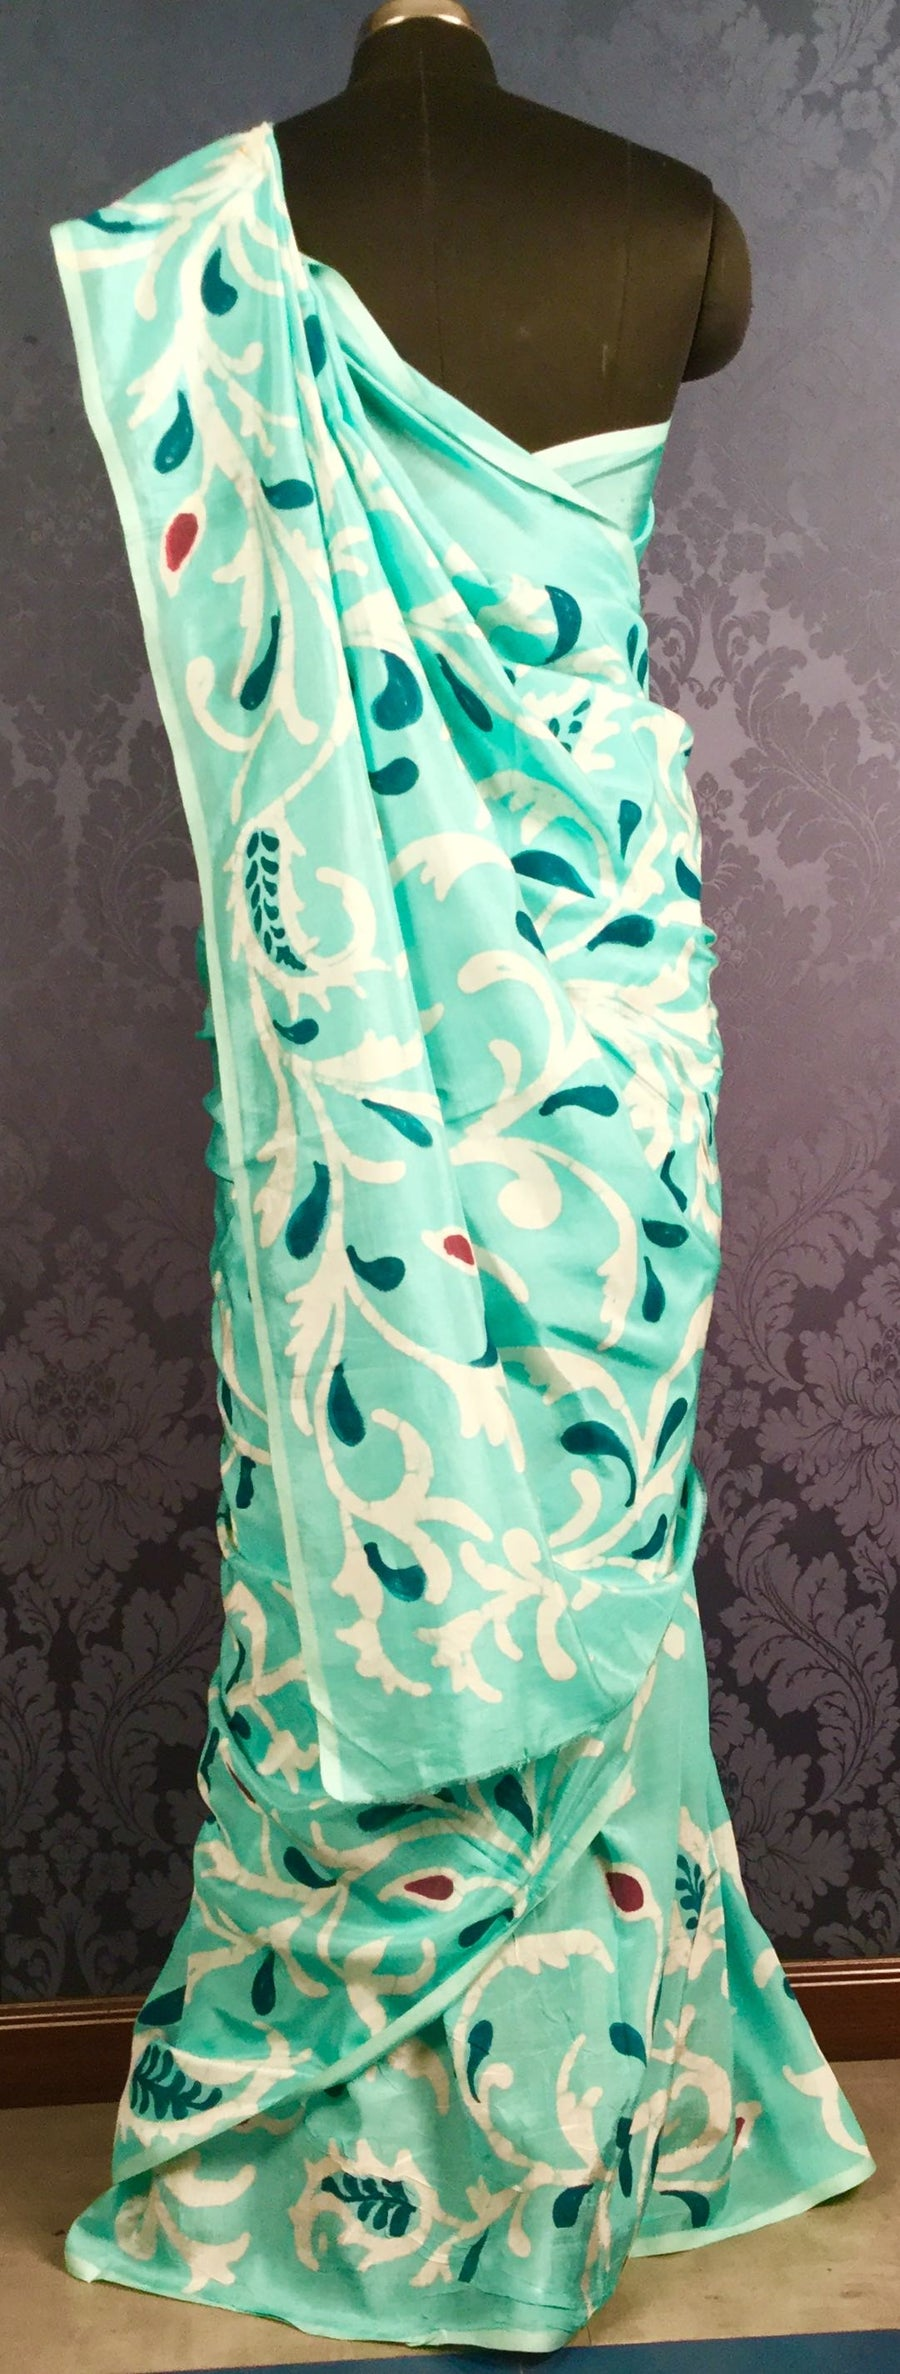 Soft Silk Handpainted Batik Saree - Sea Green & Peacock Blue - Jullaaha Boutique